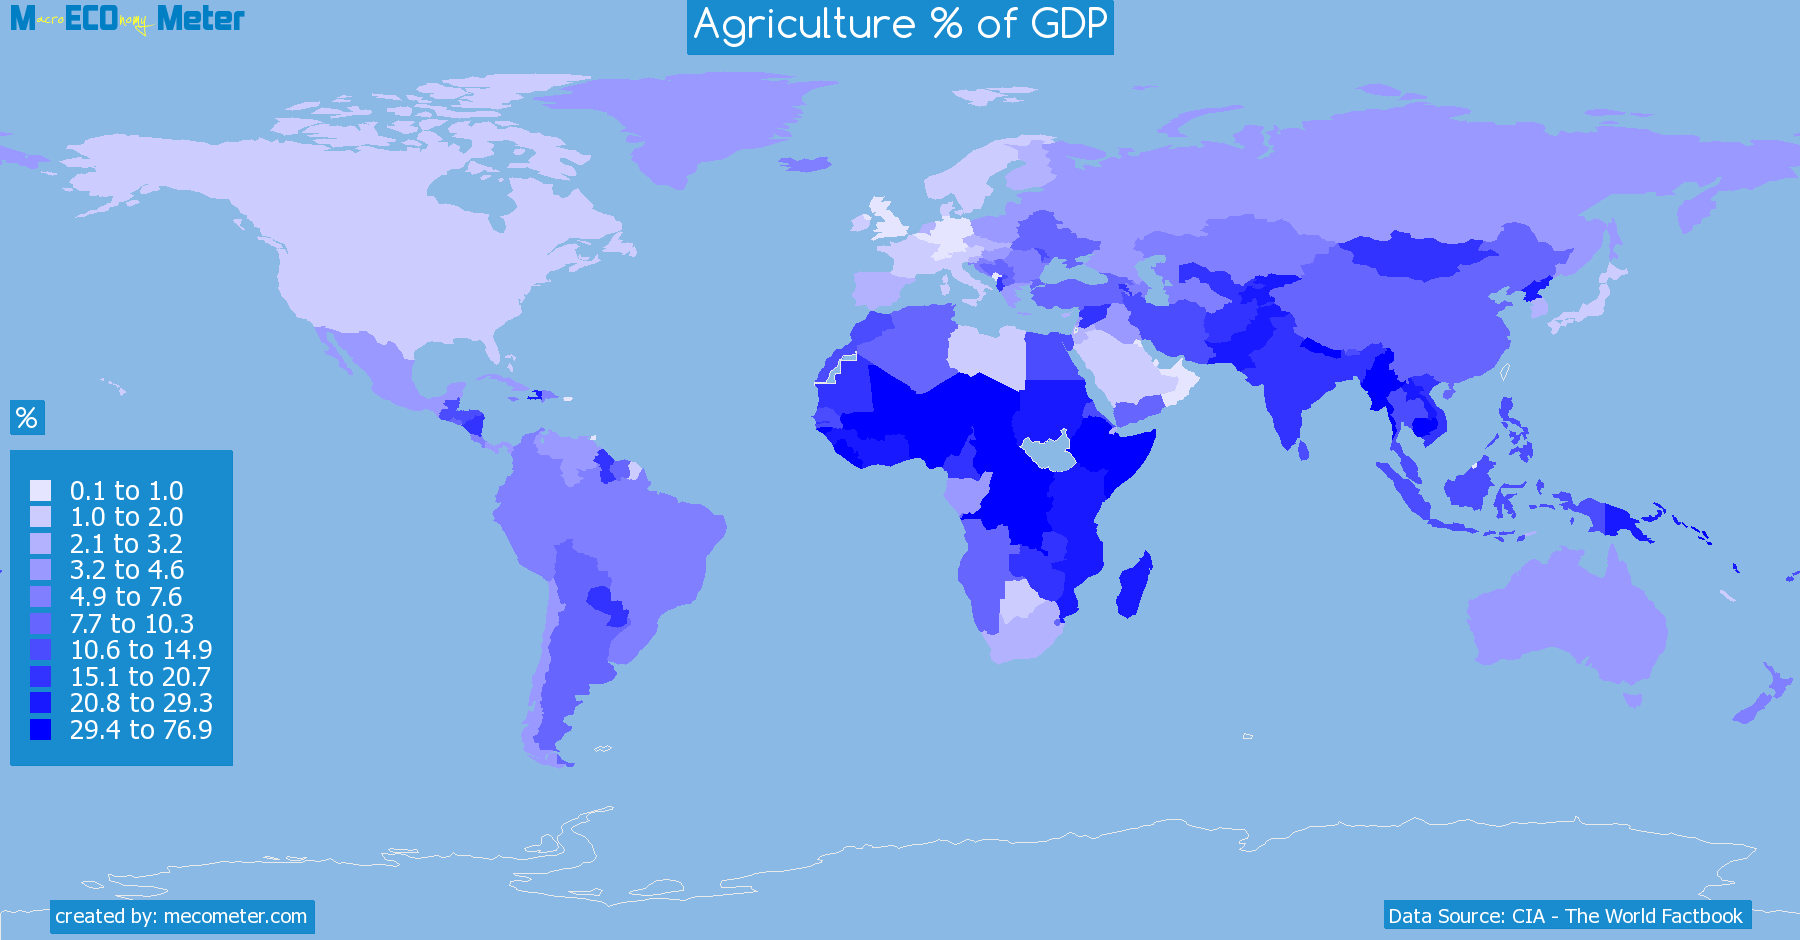 Agriculture % of GDP